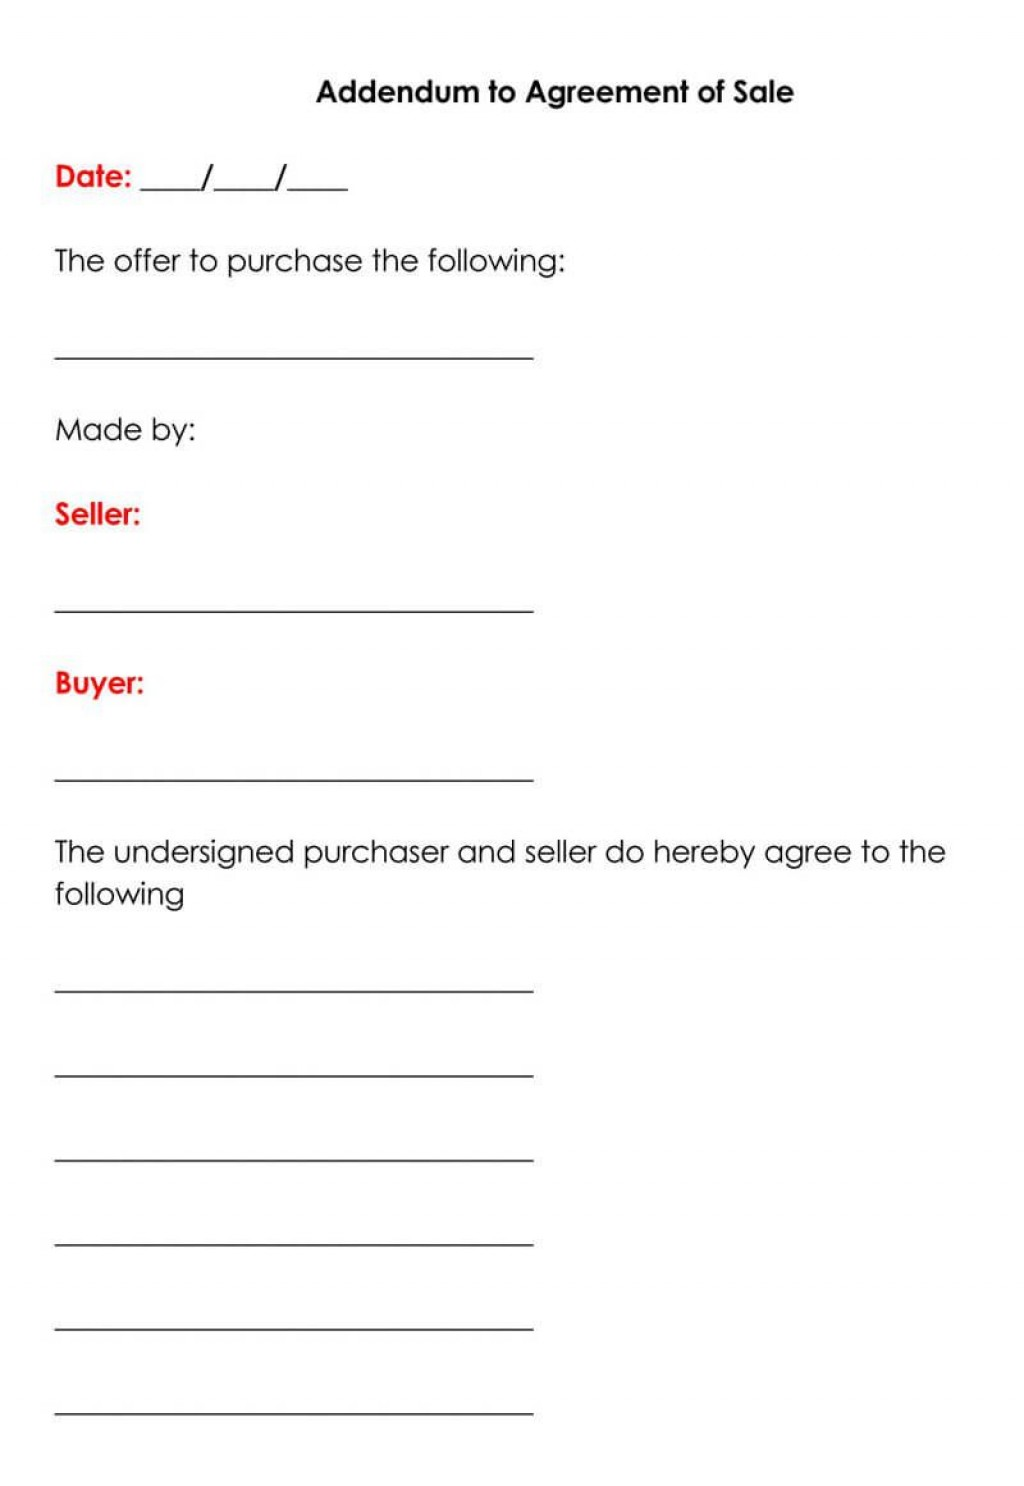 003 Fearsome Property Purchase Agreement Template Free High Resolution  Mobile HomeLarge